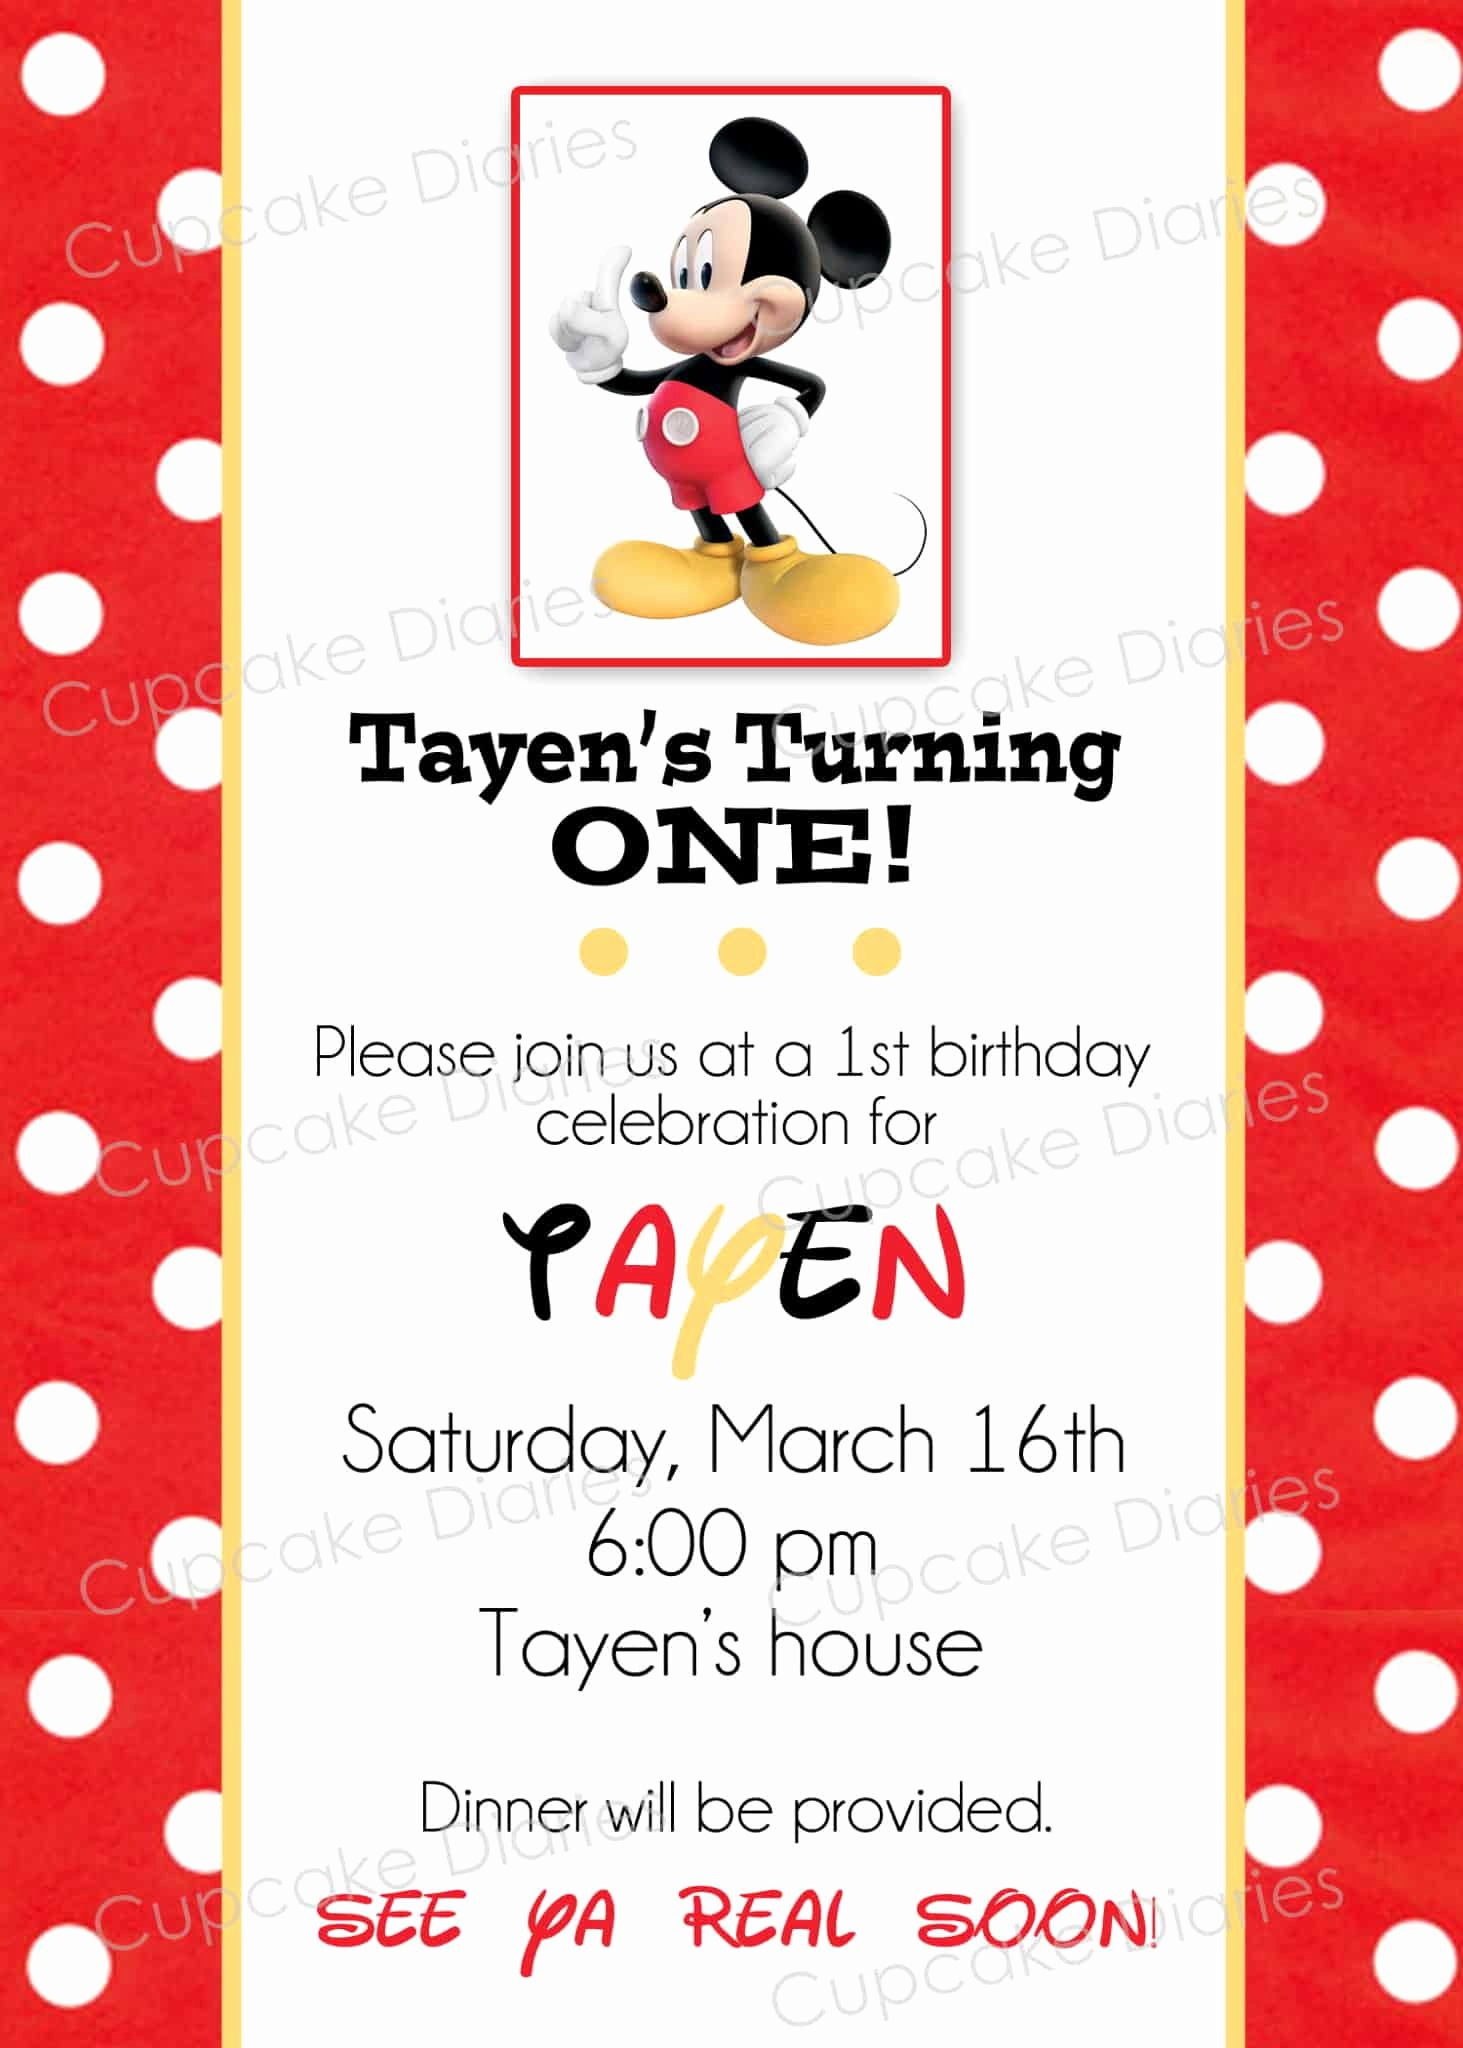 Mickey Mouse Birthday Invites Unique Simple Mickey Mouse Birthday Party Free Subway Art